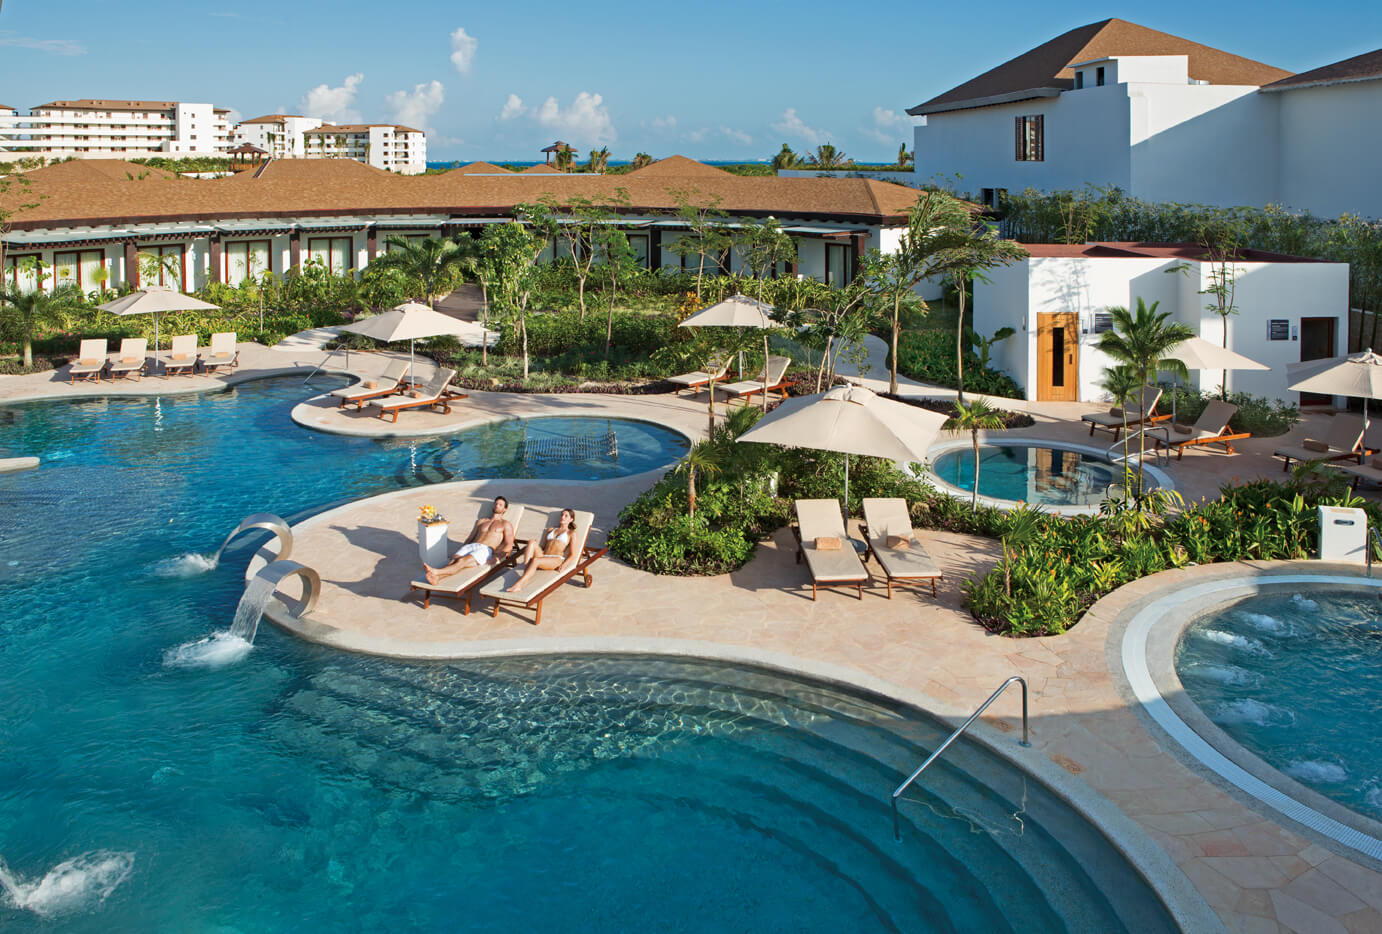 outdoor hydrotherapy area at the Secrets Playa Mujeres spa